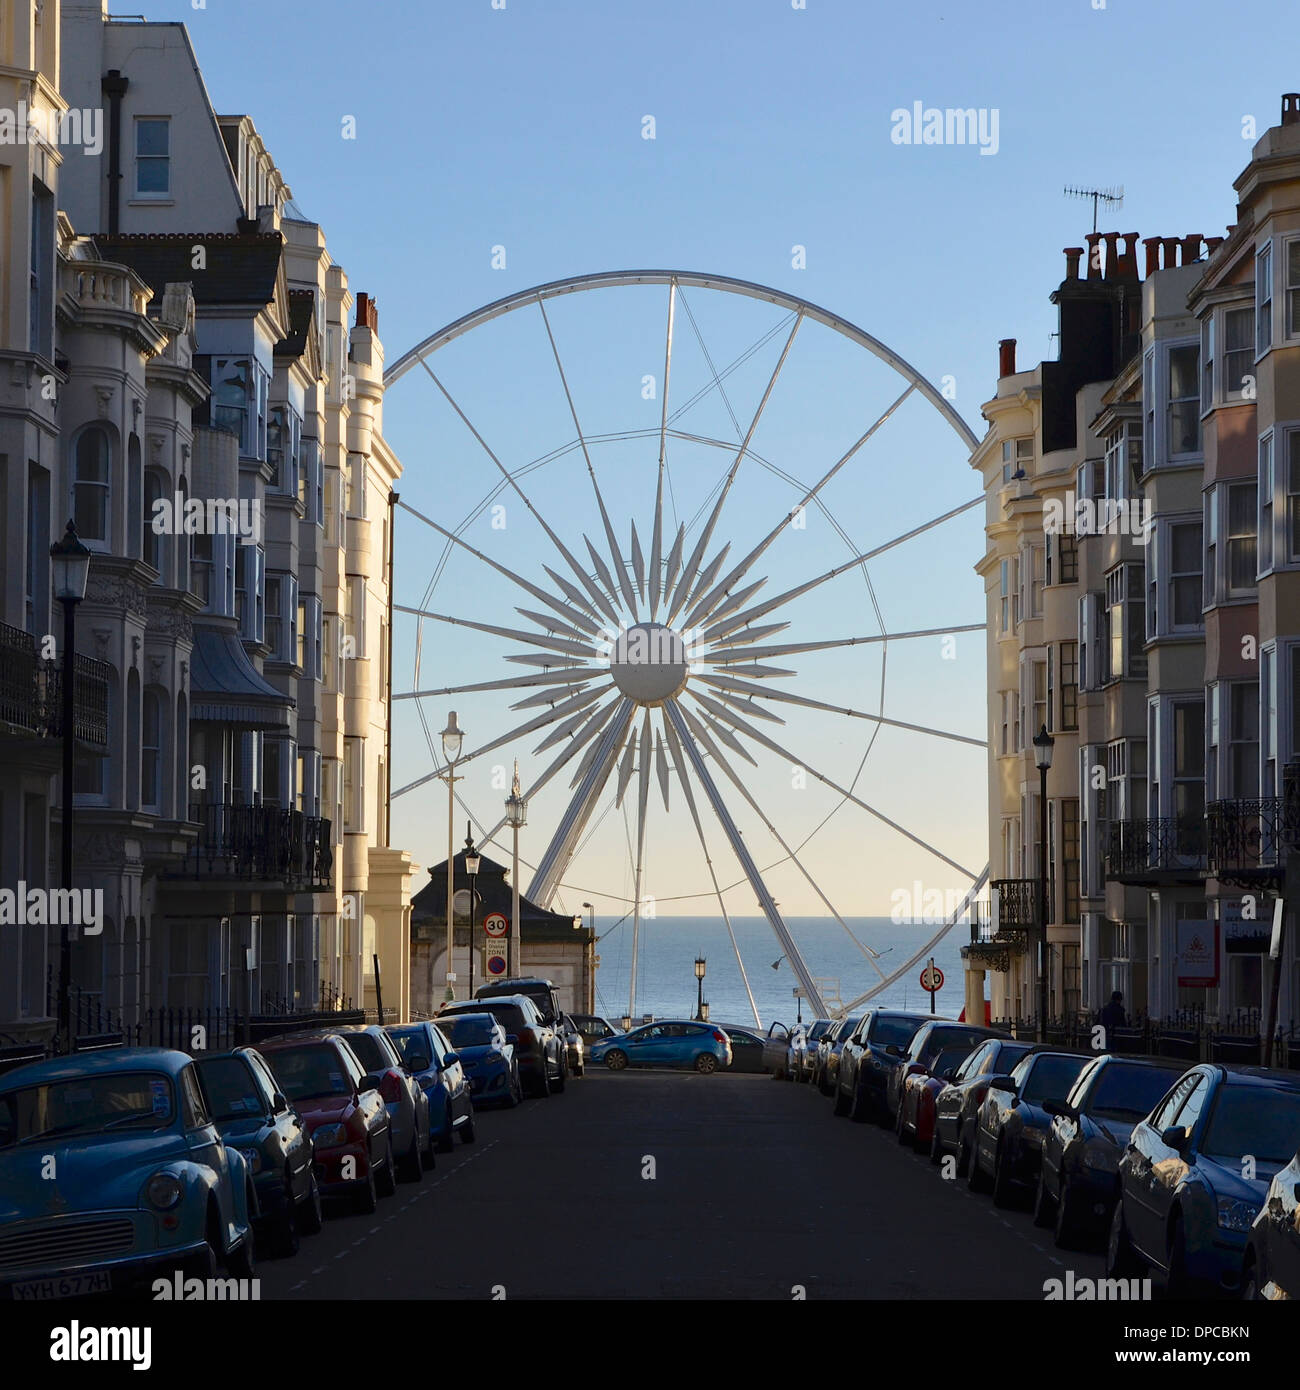 Brighton Wheel - Ferris Wheel viewed from Kemp Town with the sea in the background, framed by Victorian terraced - Stock Image